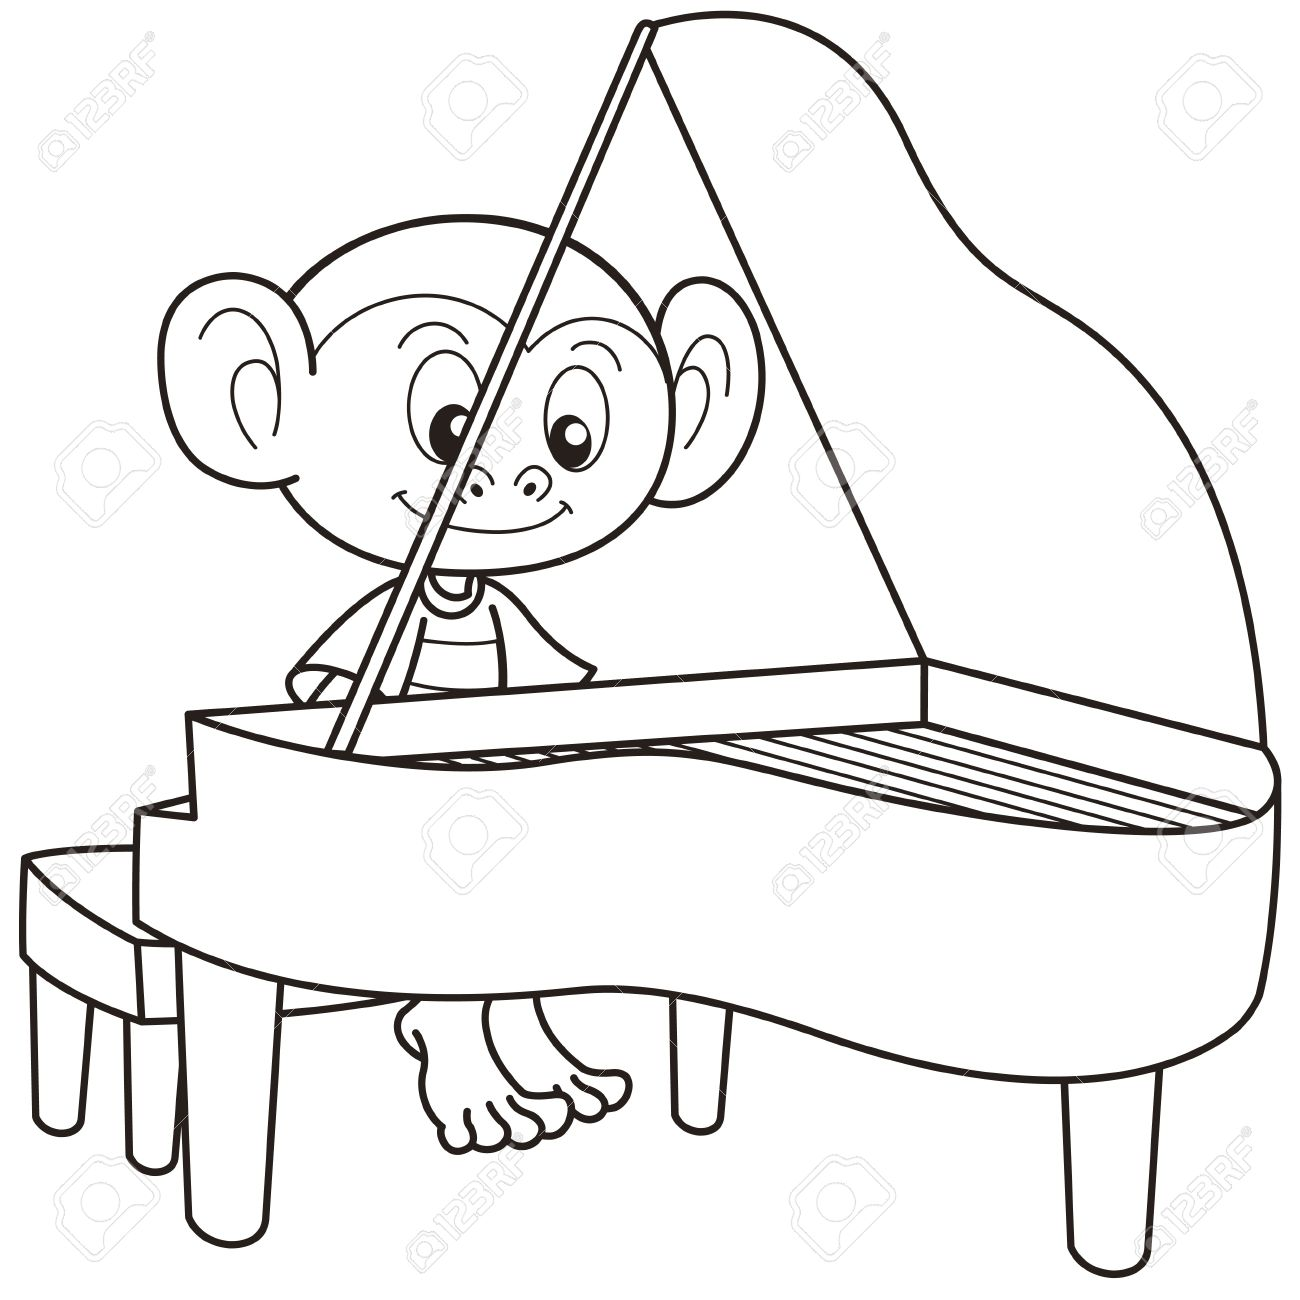 Cartoon Monkey Playing A Piano Black And White Stock Vector